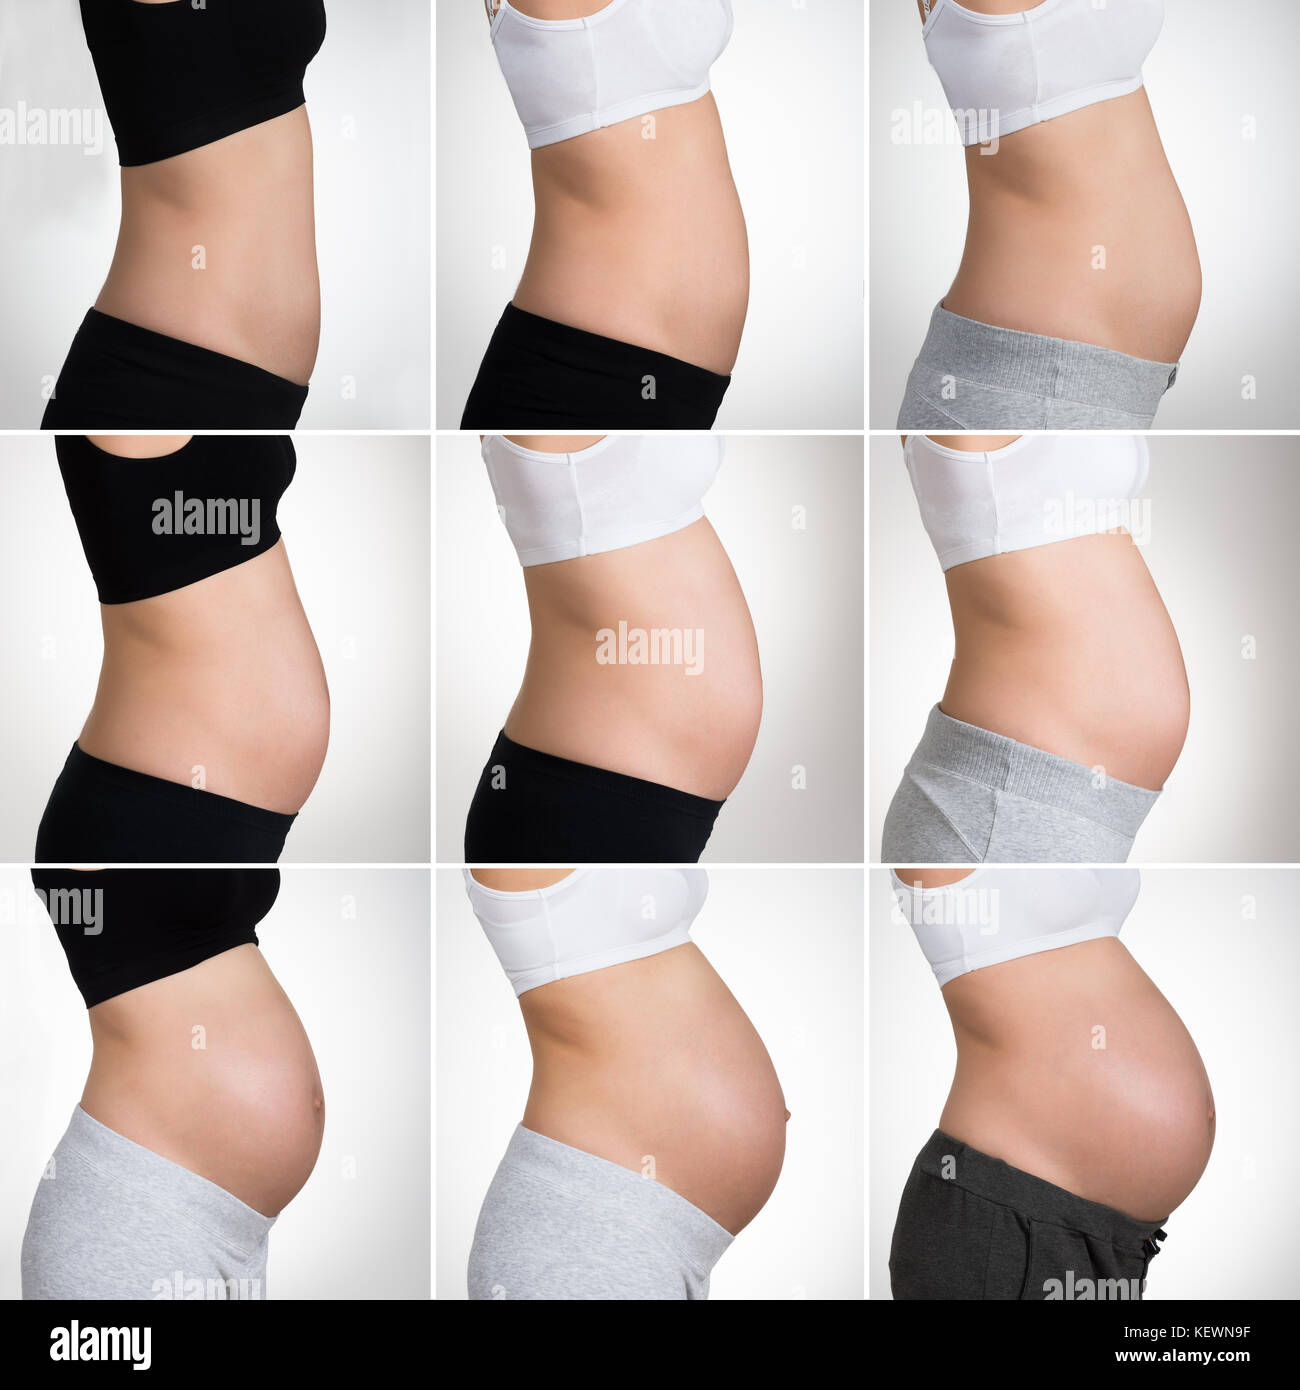 Stages Of Pregnancy Stock Photos & Stages Of Pregnancy